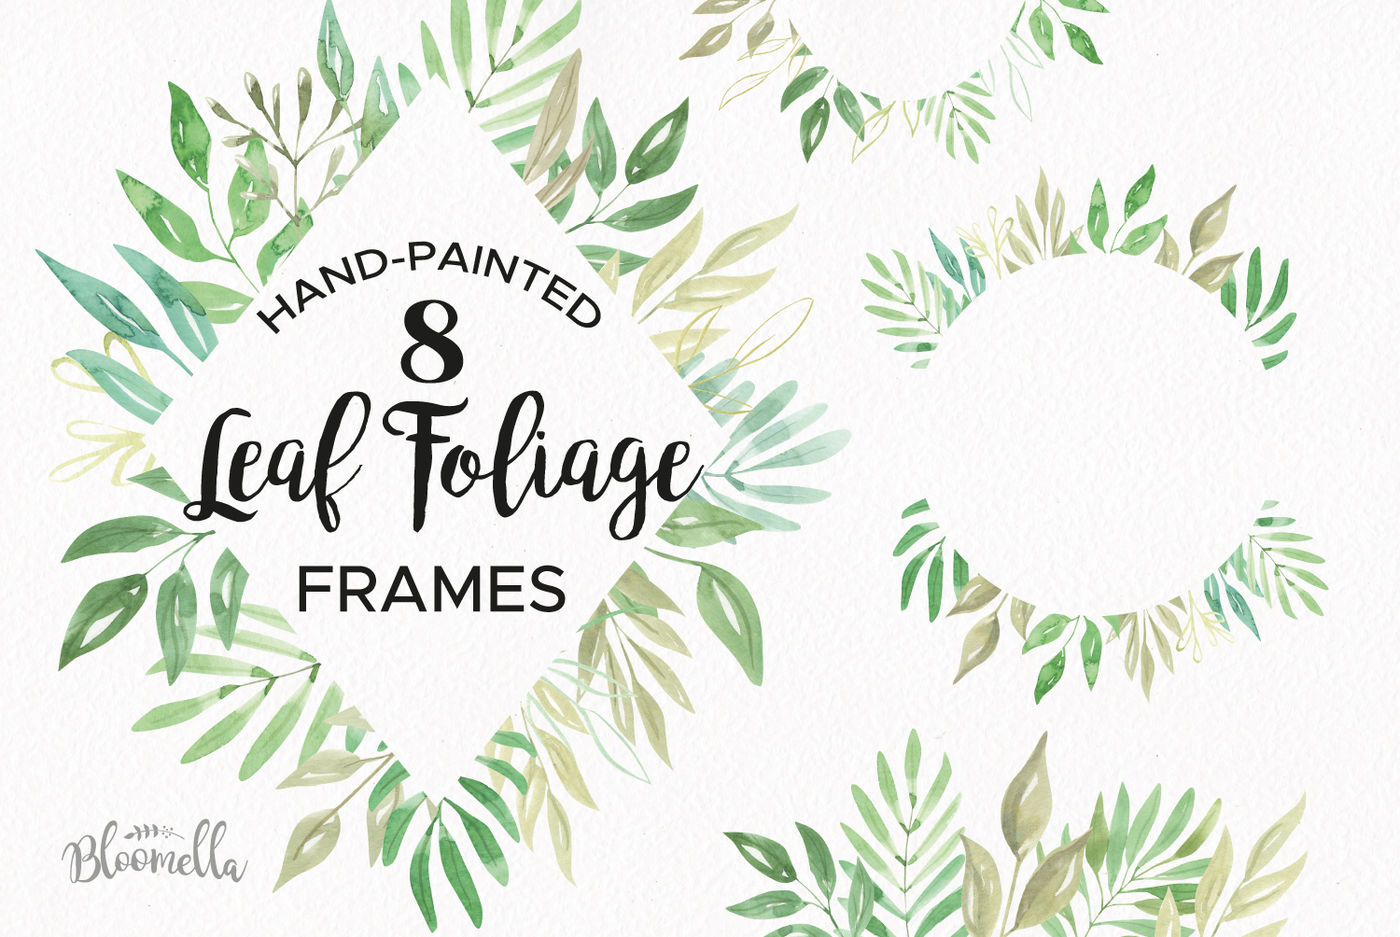 Foliage Watercolor Clipart Frames Greenery Leaves Leaf Pretty By